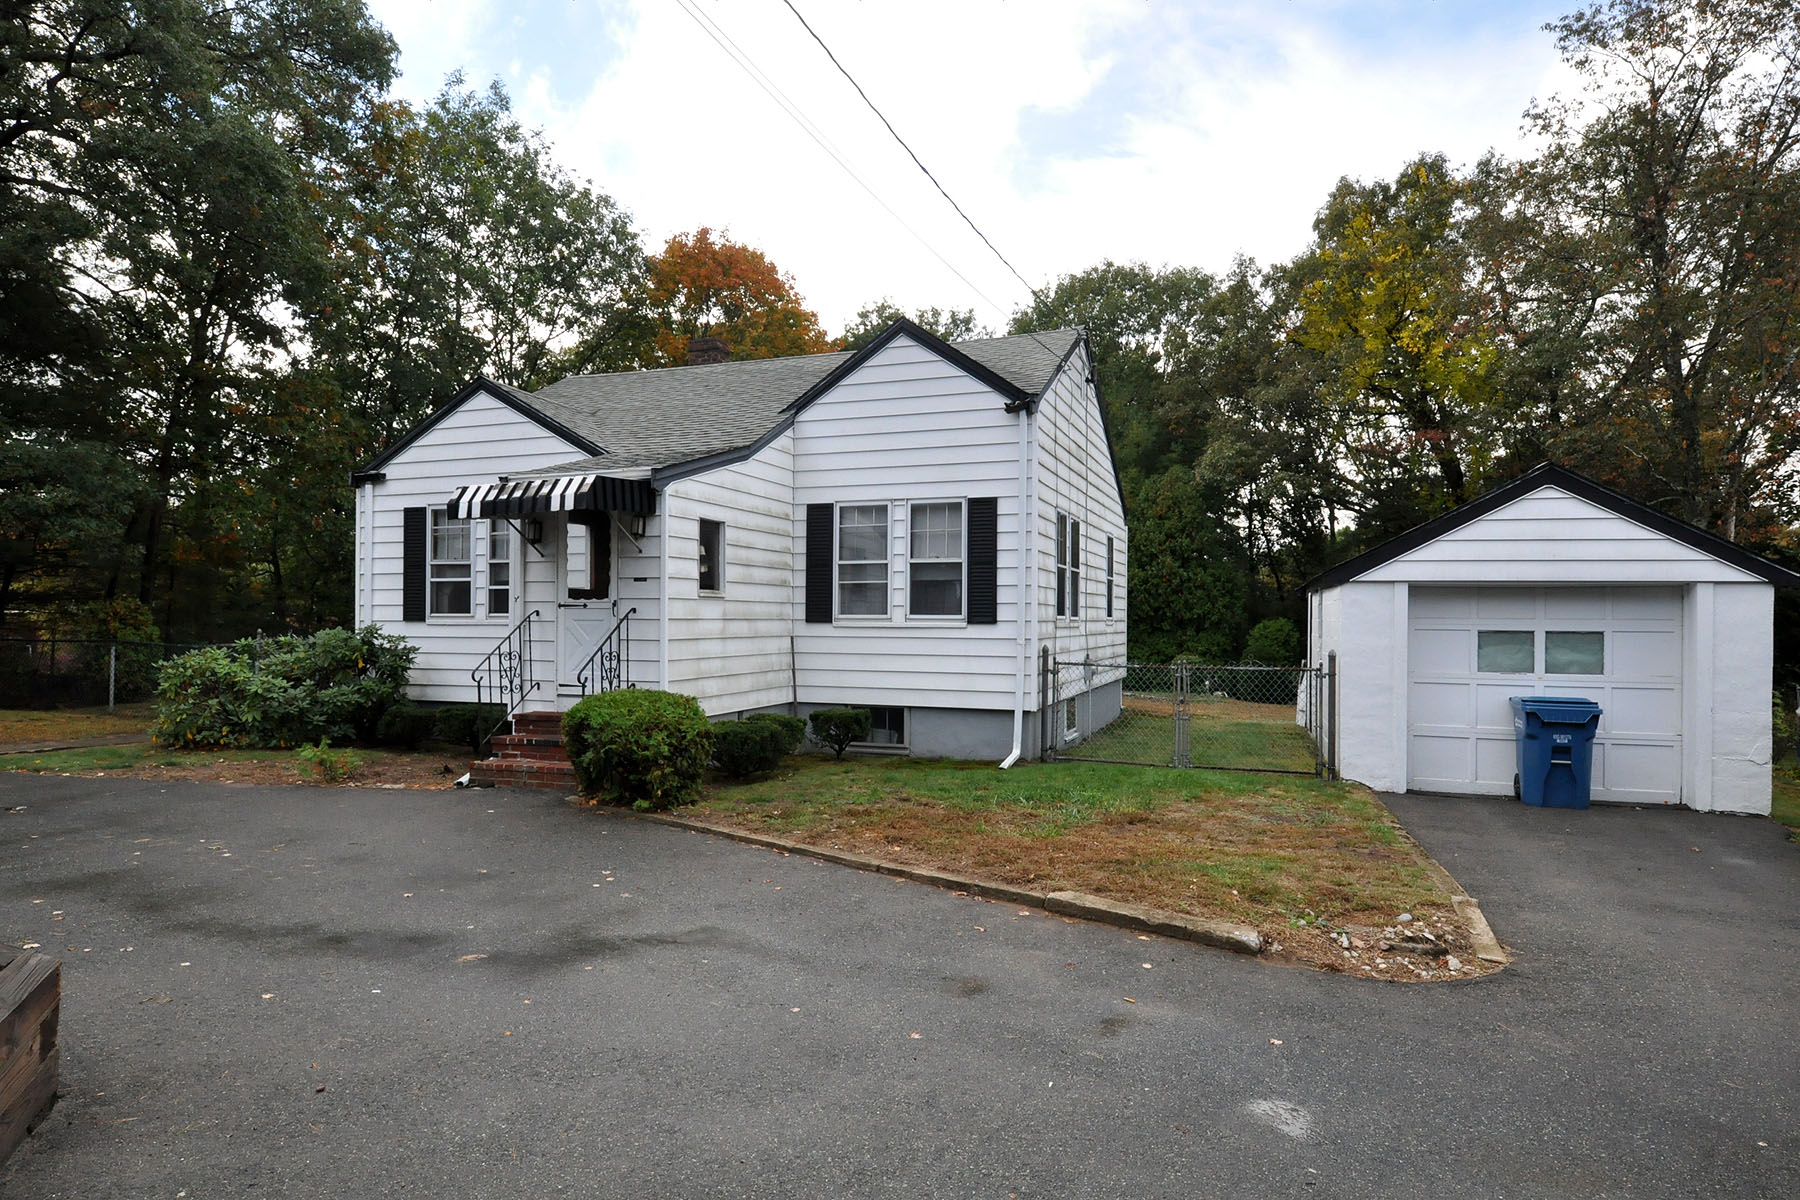 Property For Sale at 201 Turnpike Street, Canton, MA